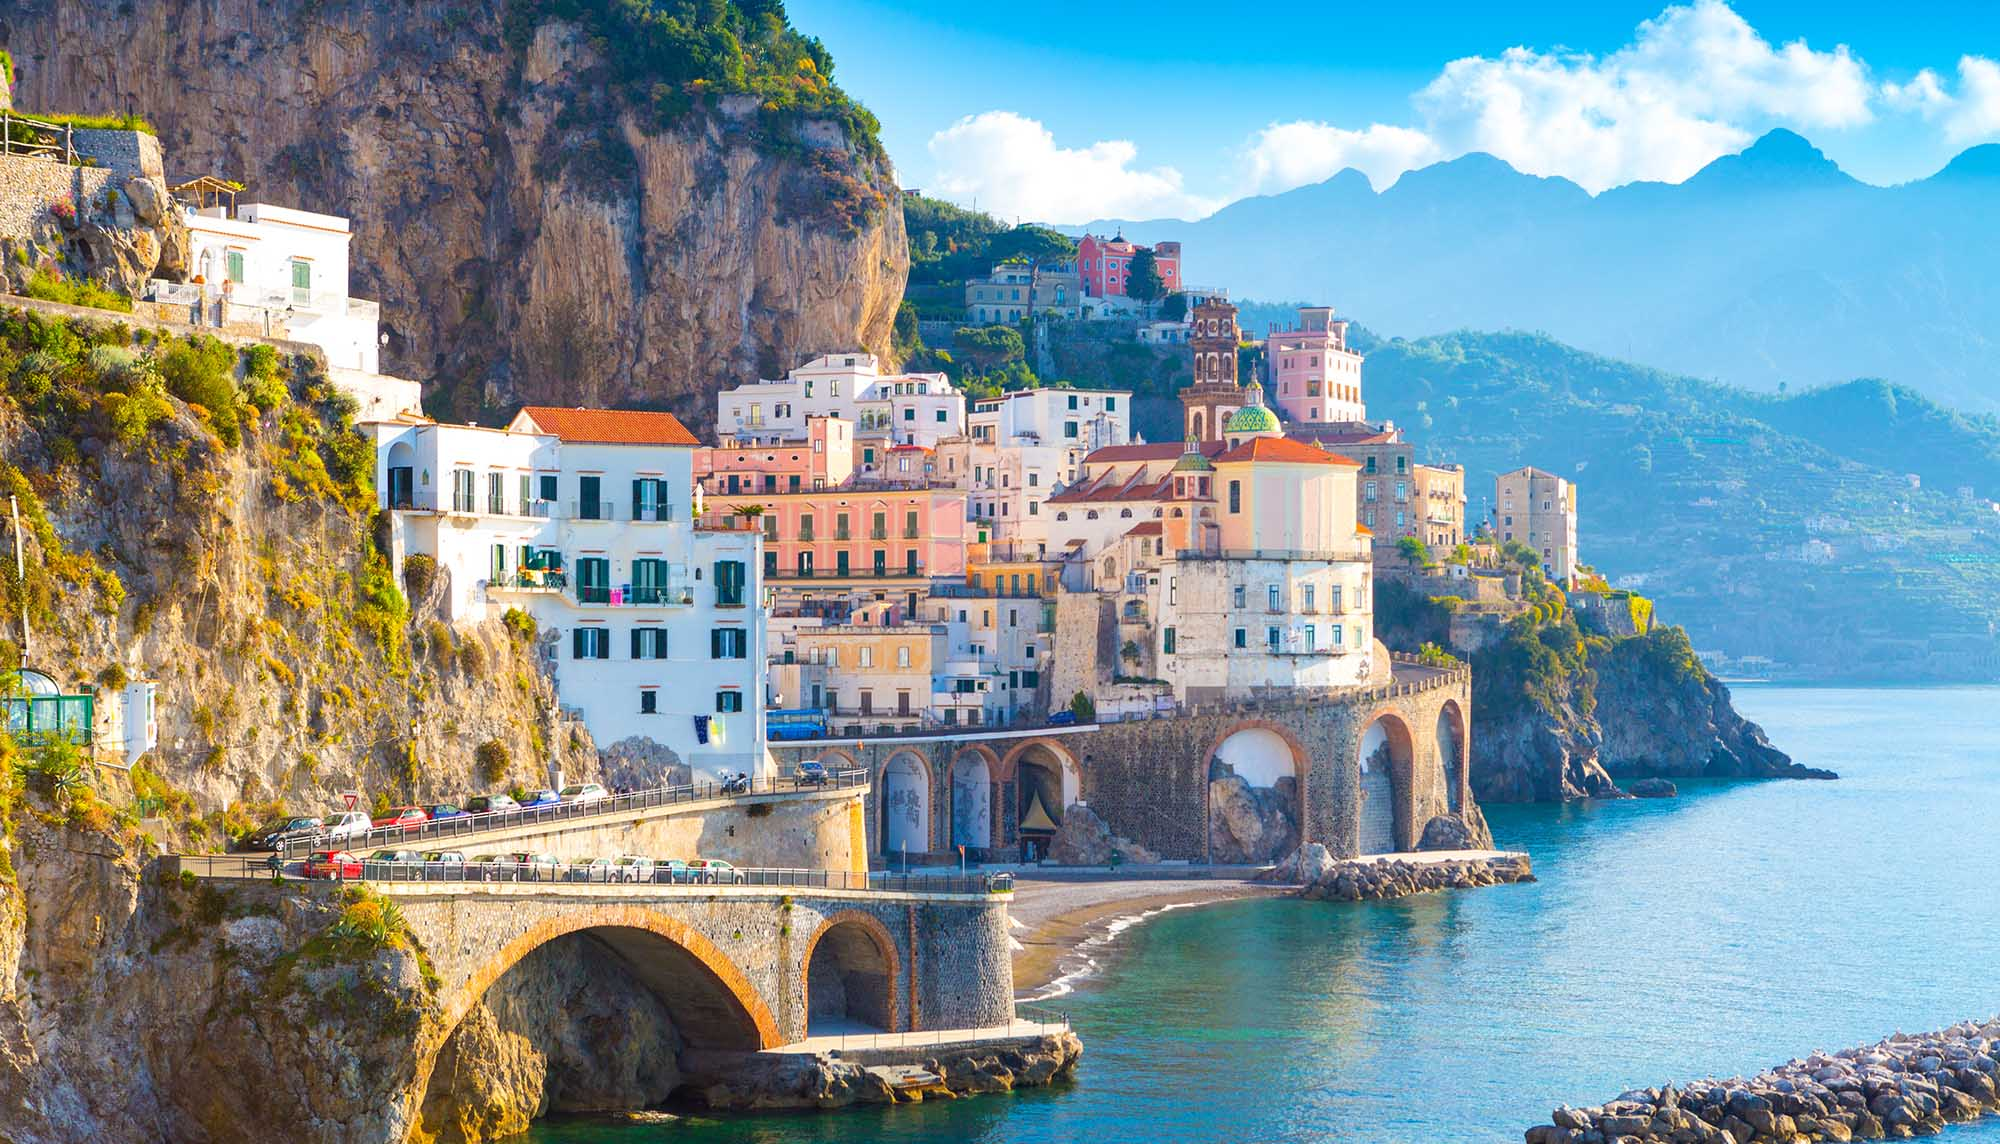 How to Spend 10 Days in Italy: 5 Amazing Itinerary Ideas for your